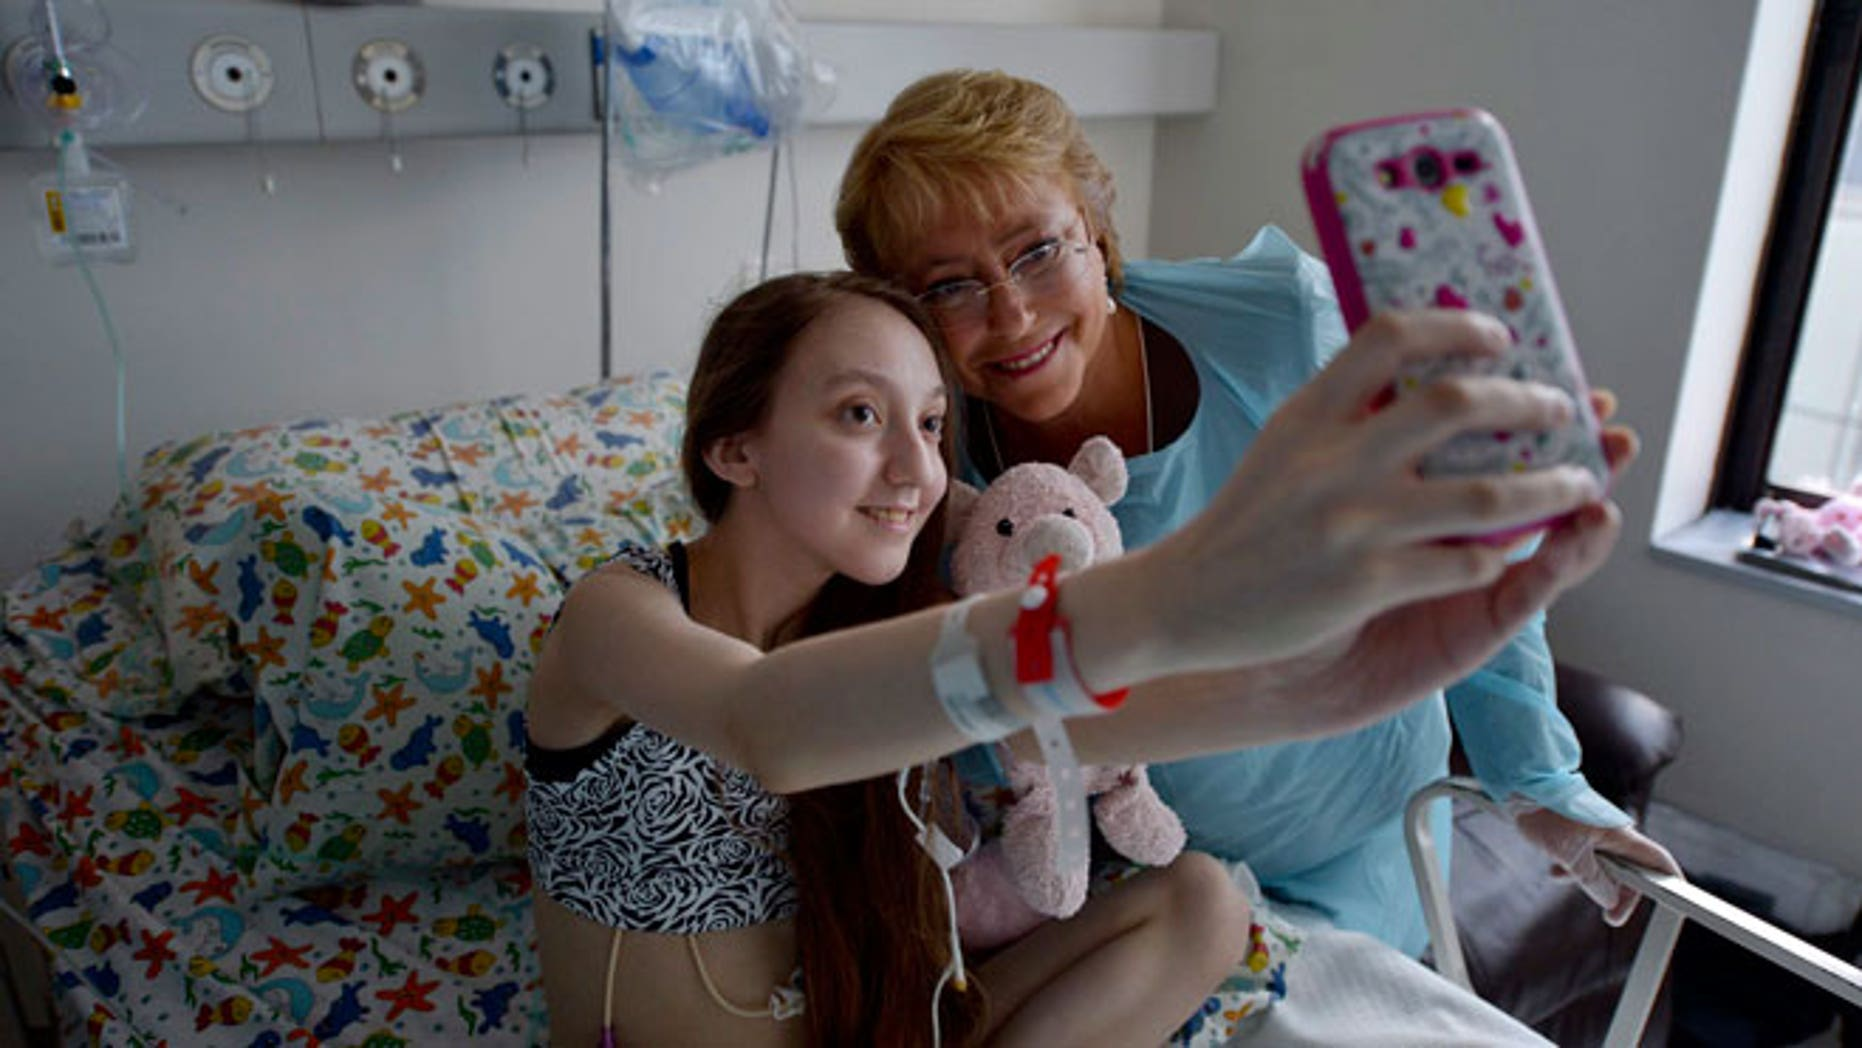 Chile President Michelle Bachelet, right, poses for a selfie with Valentina Maureira, who suffers from cystic fibrosis, at a hospital in Santiago, Chile, Saturday, Feb. 28, 2015.